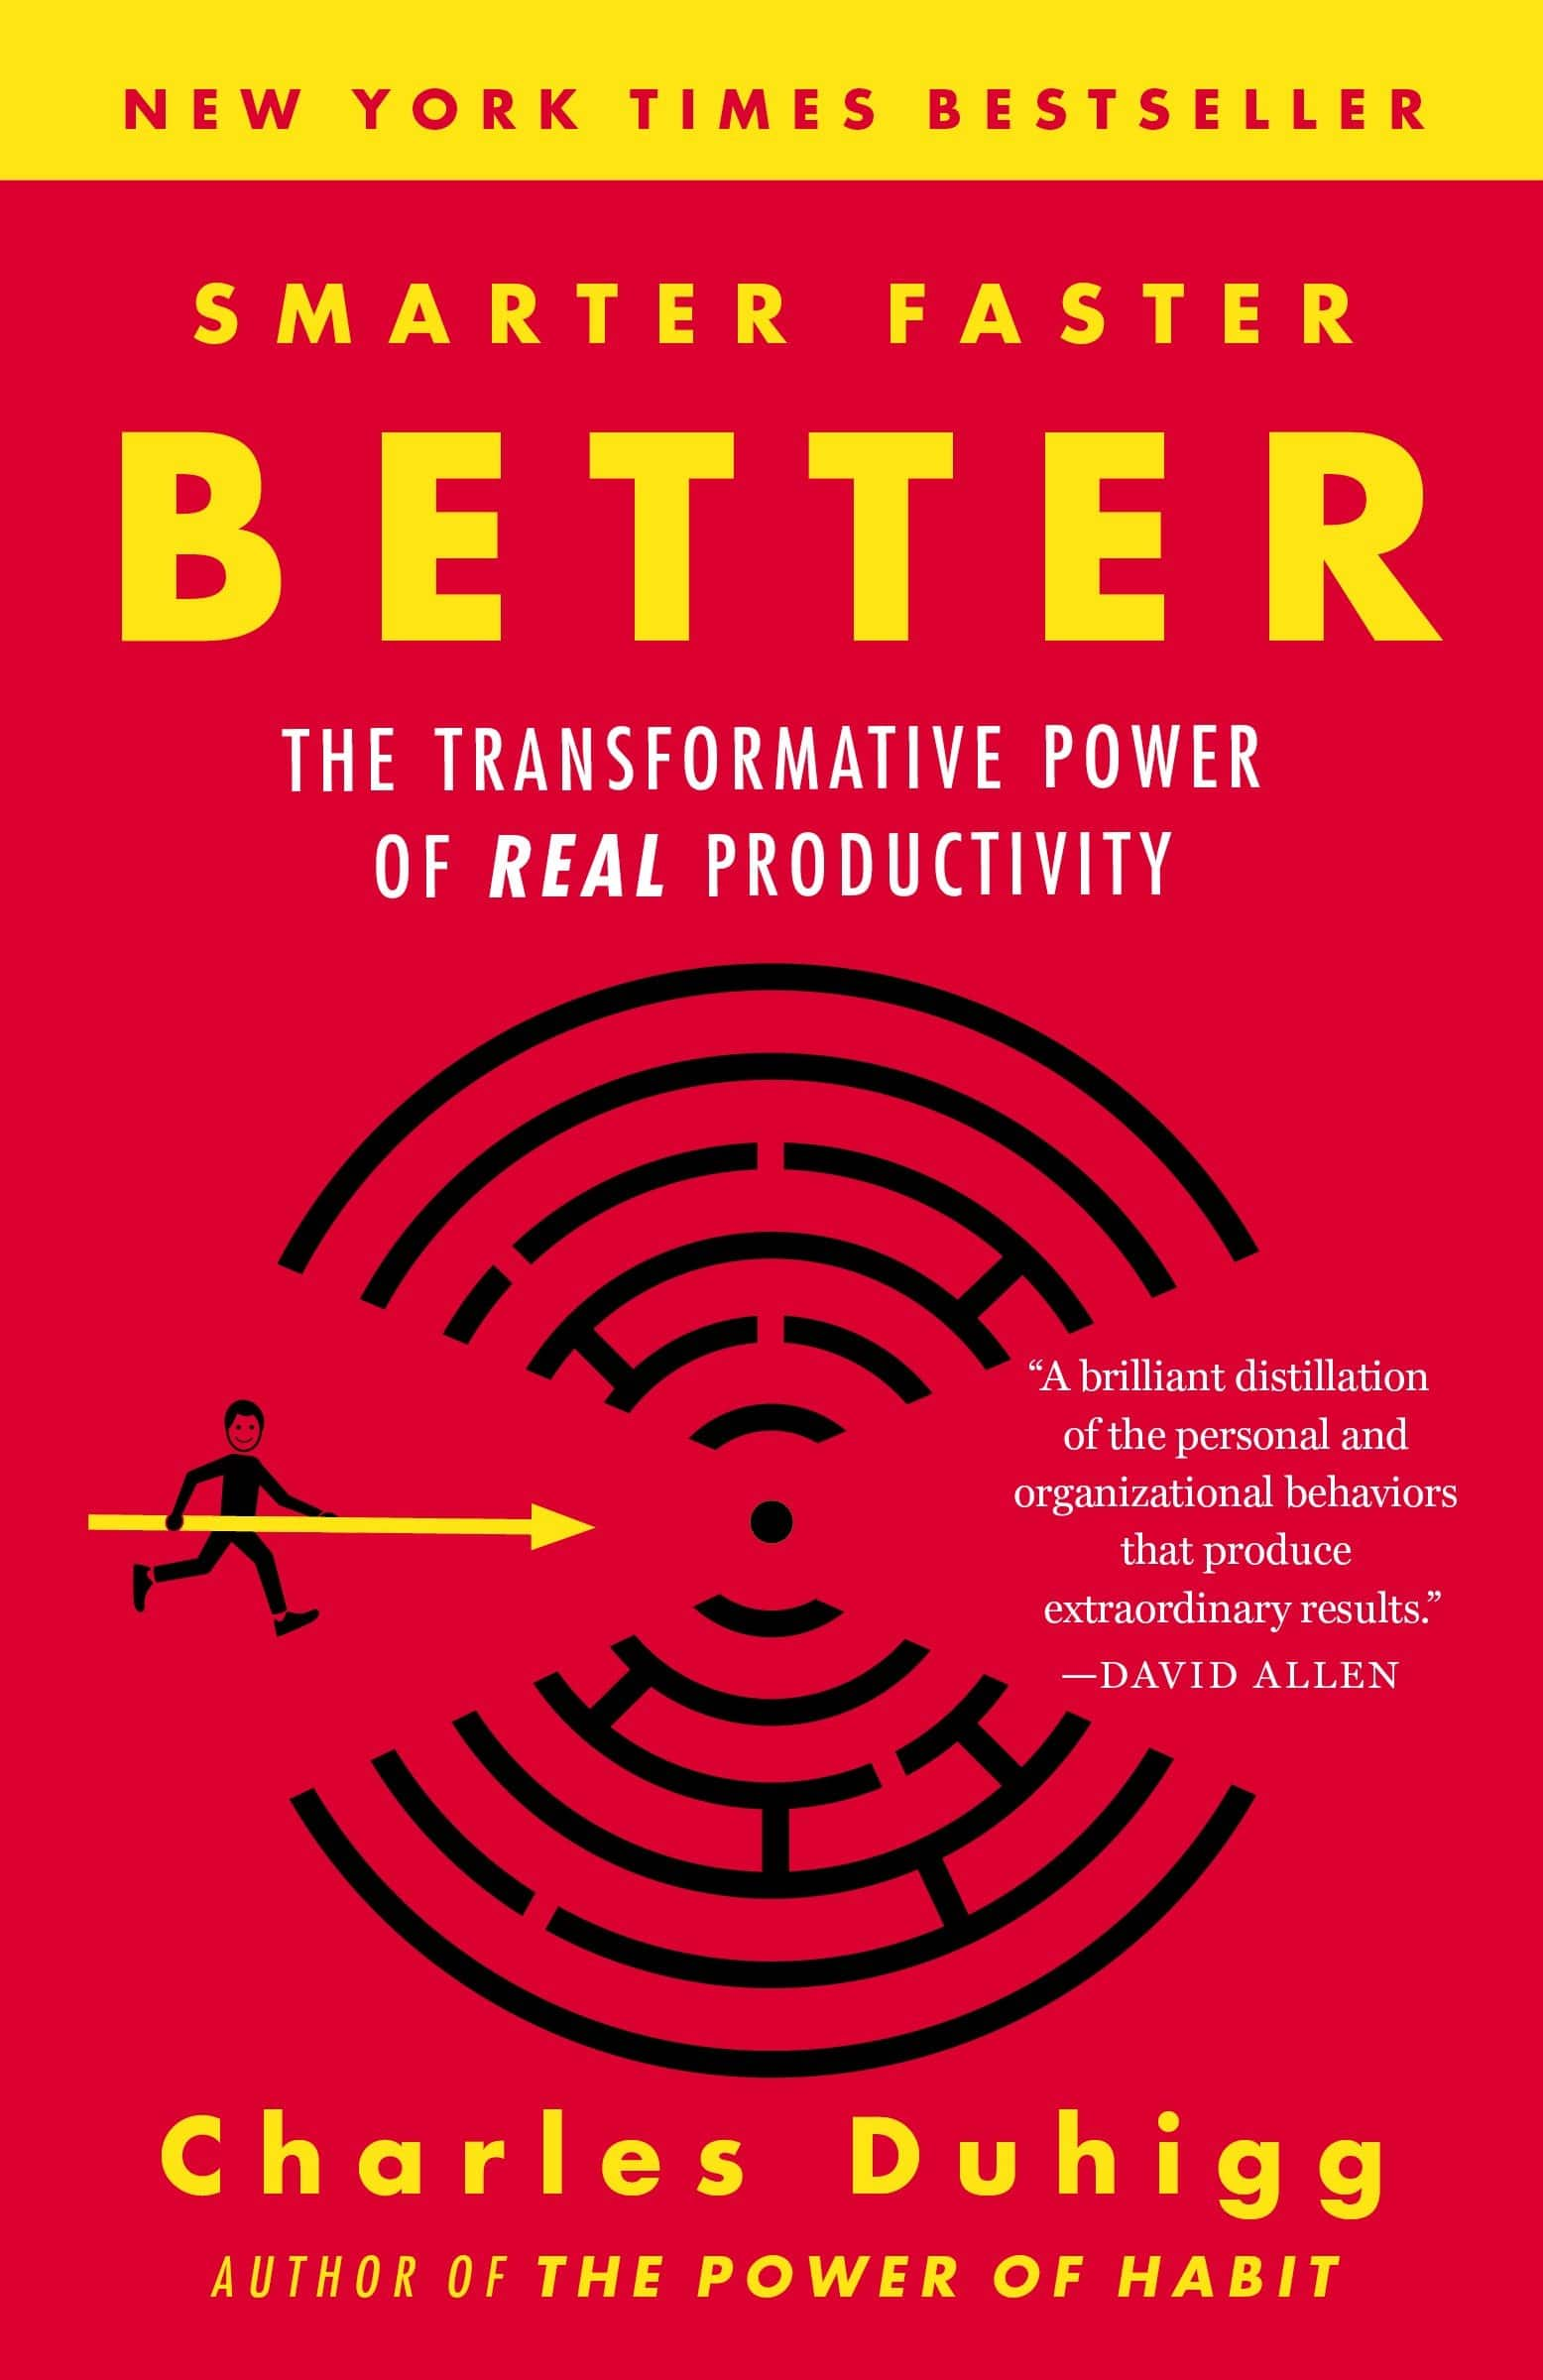 Smarter Faster Better: The Transformative Power of Real Productivity (Kindle eBook) $2.99